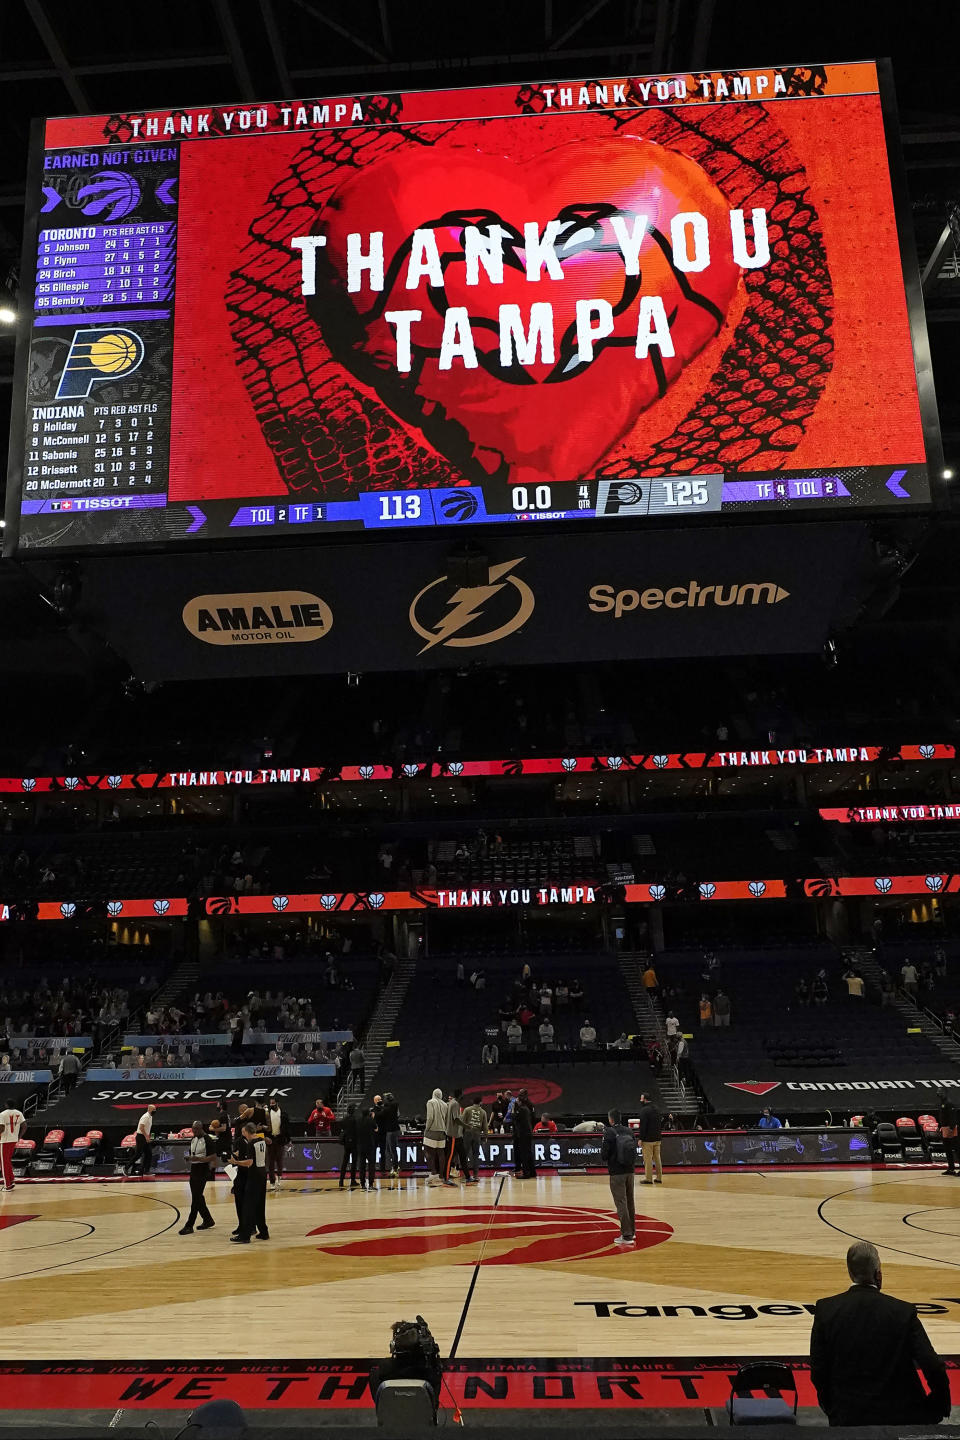 The Toronto Raptors thanks Tampa at the end of their last NBA basketball game in their temporary home against the Indiana Pacers Sunday, May 16, 2021, in Tampa, Fla. The Raptors played their season in Tampa due to coronavirus restrictions in Canada. (AP Photo/Chris O'Meara)